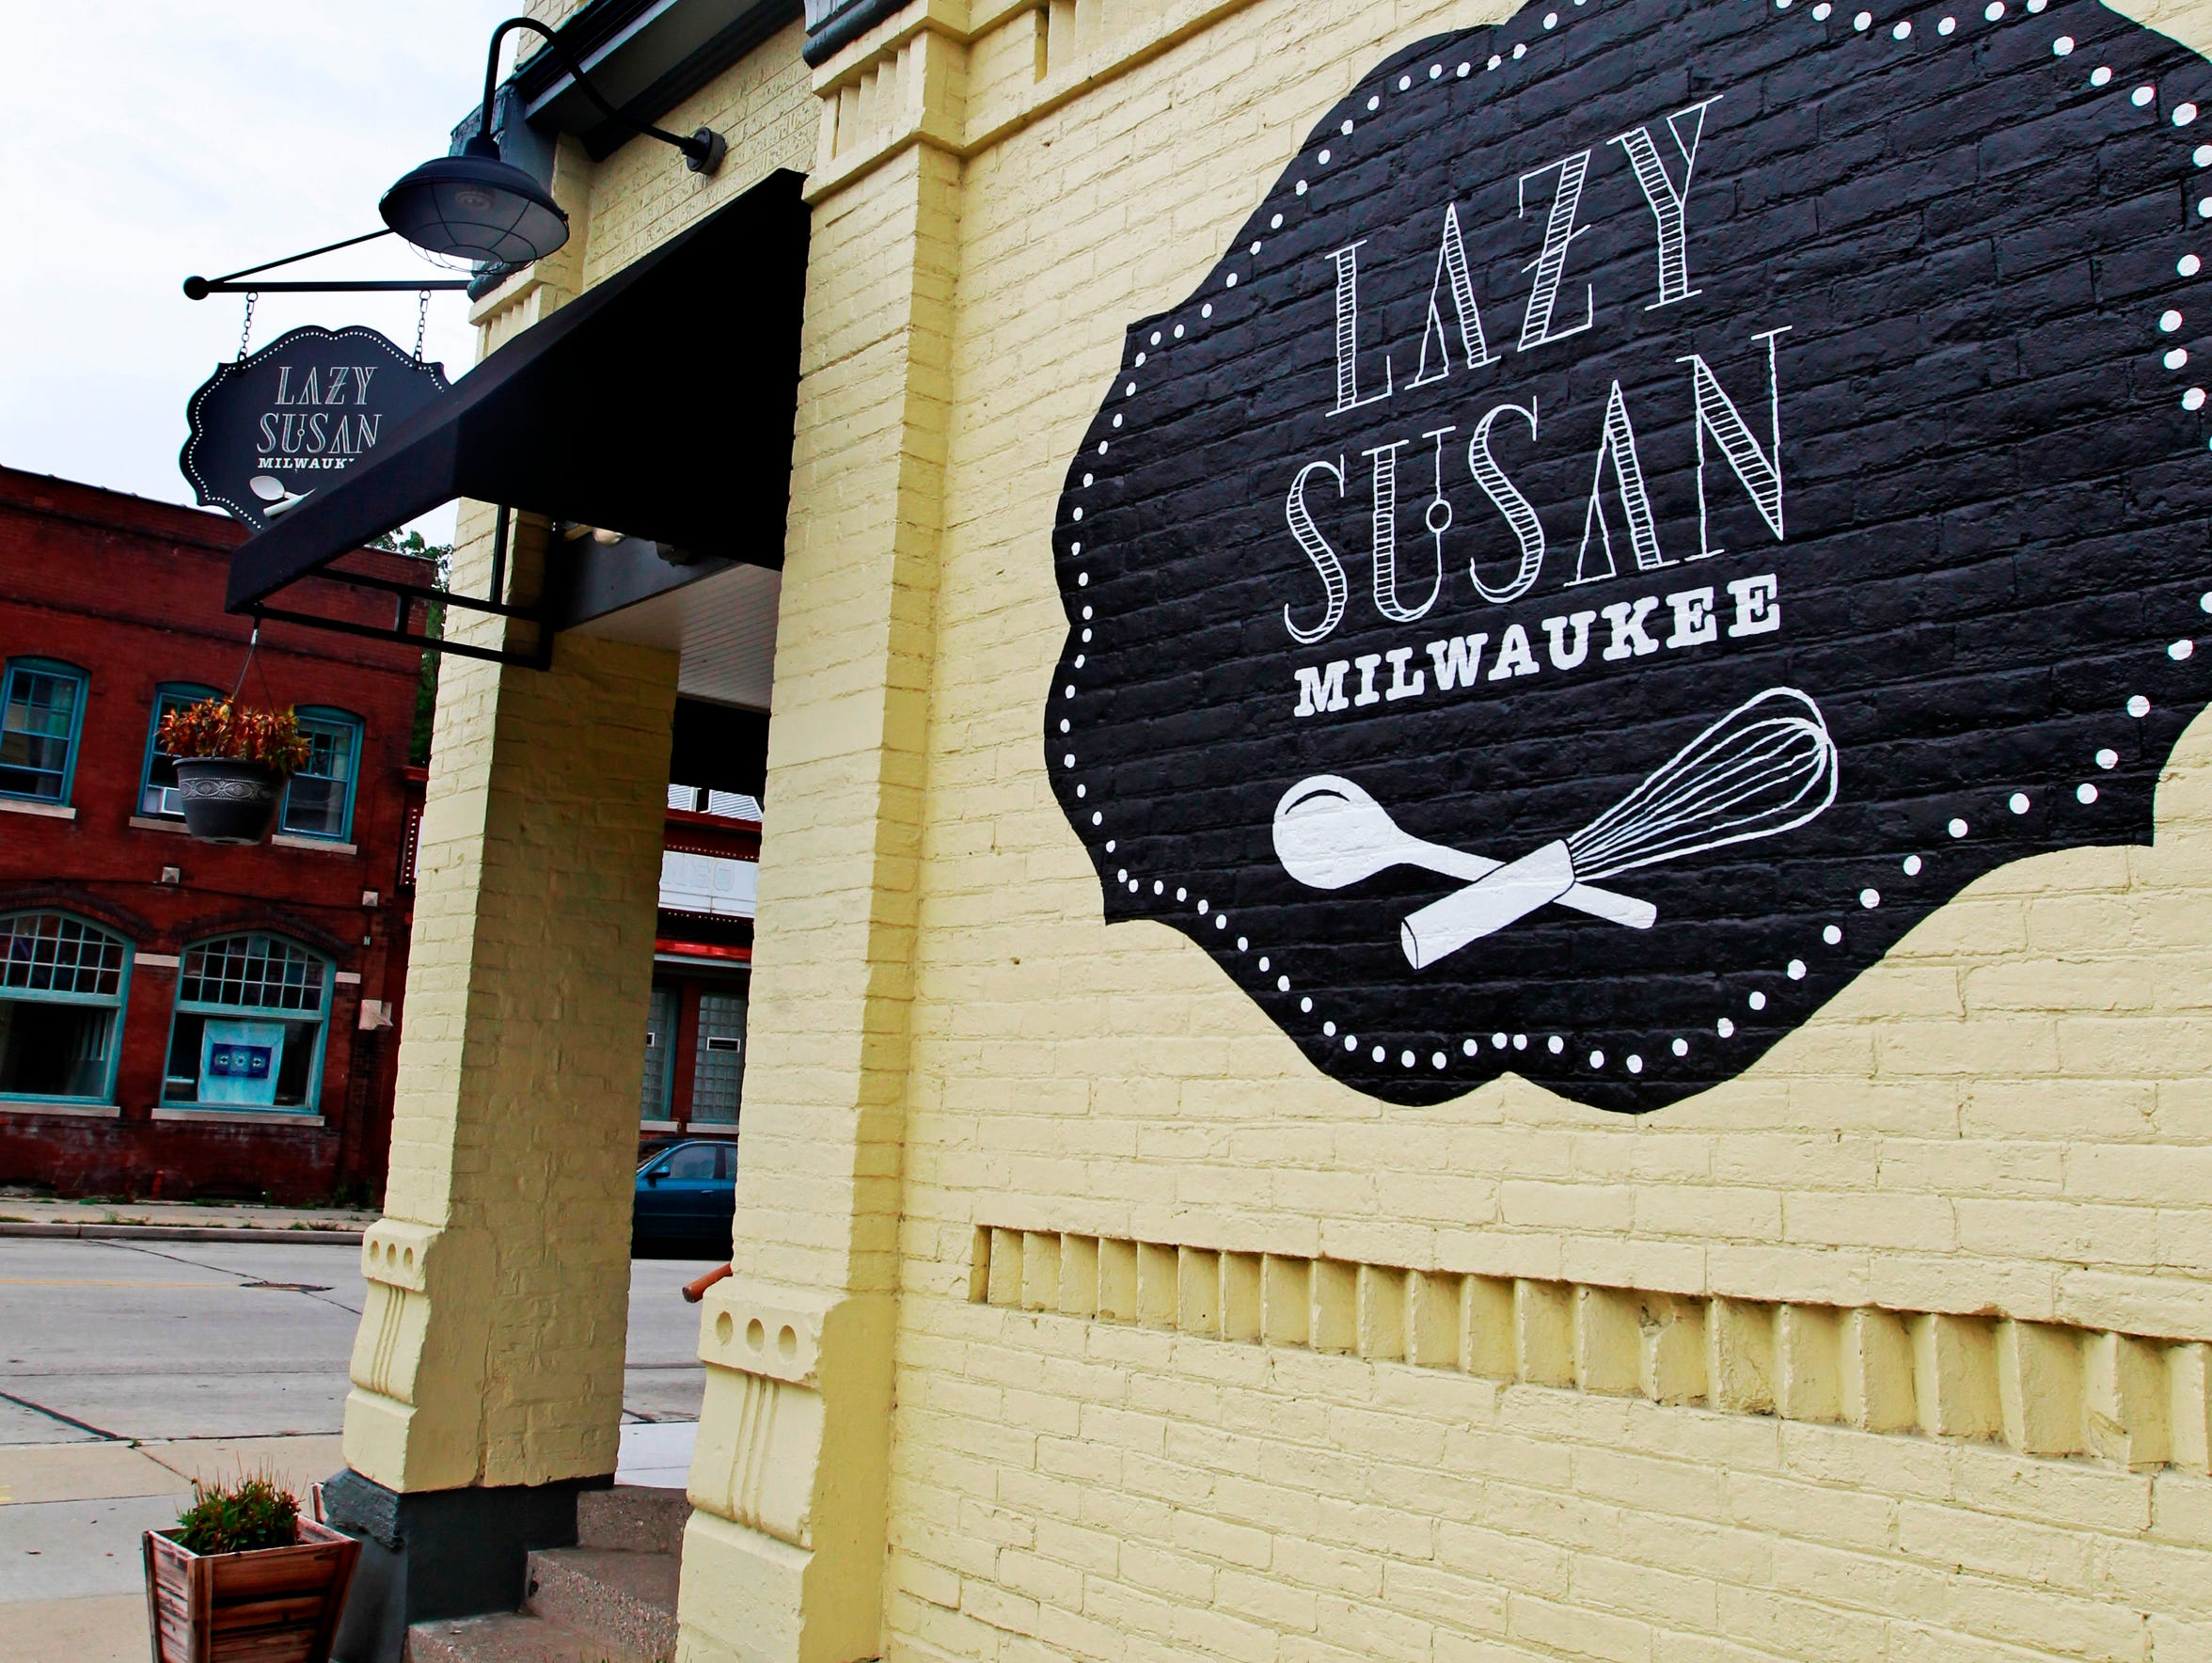 Lazy Susan is at 2378 S. Howell Ave. in the Bay View